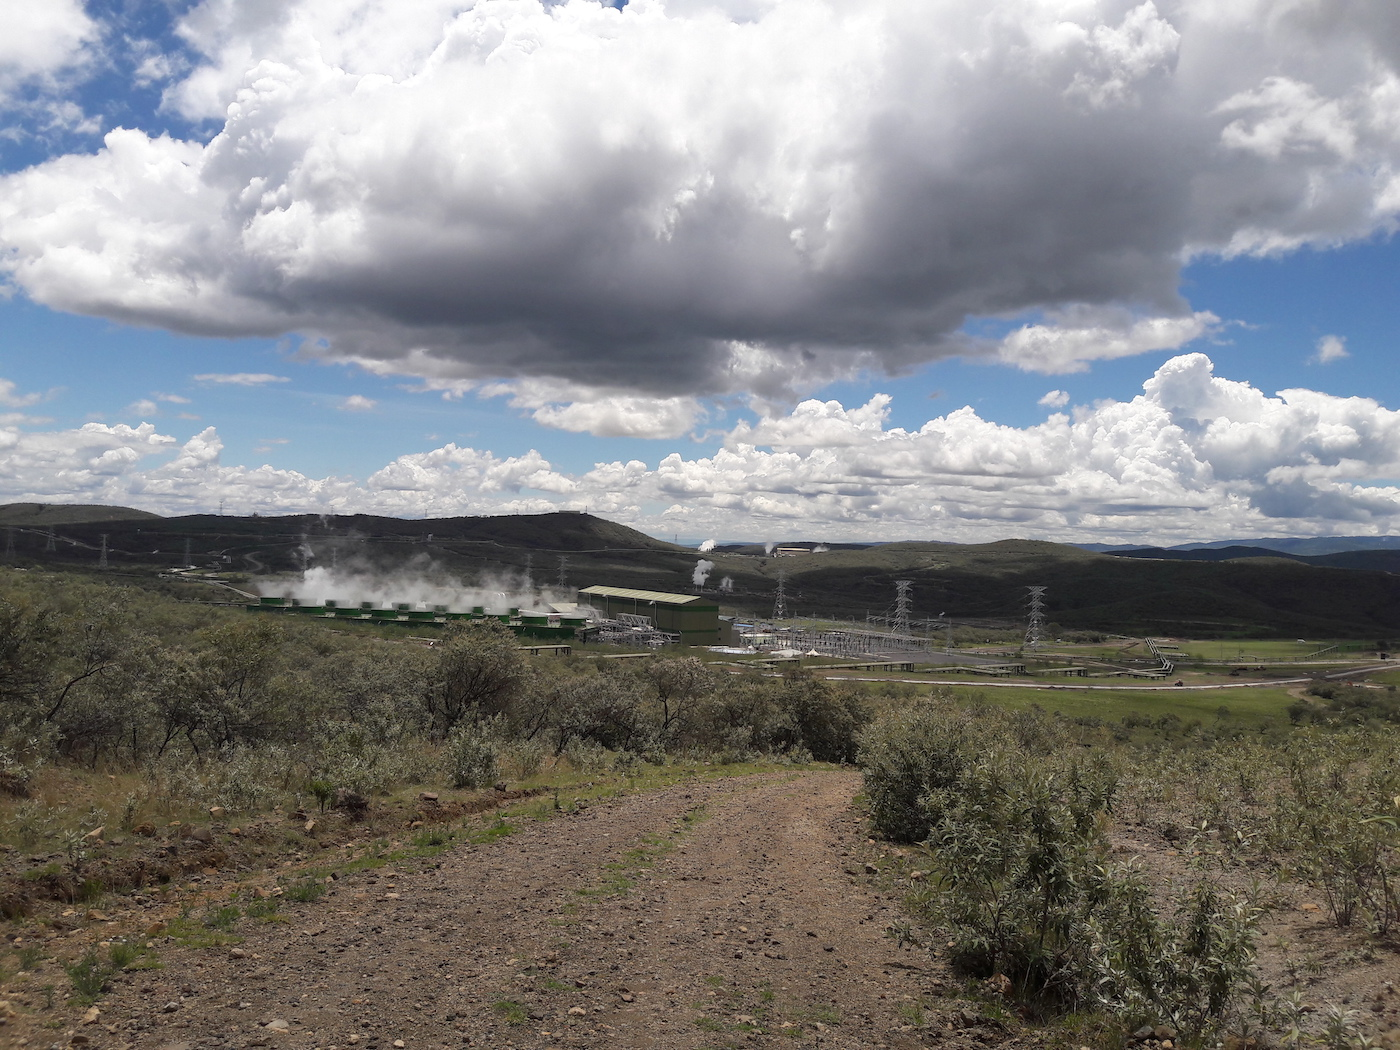 The Olkaria Geothermal Power Project